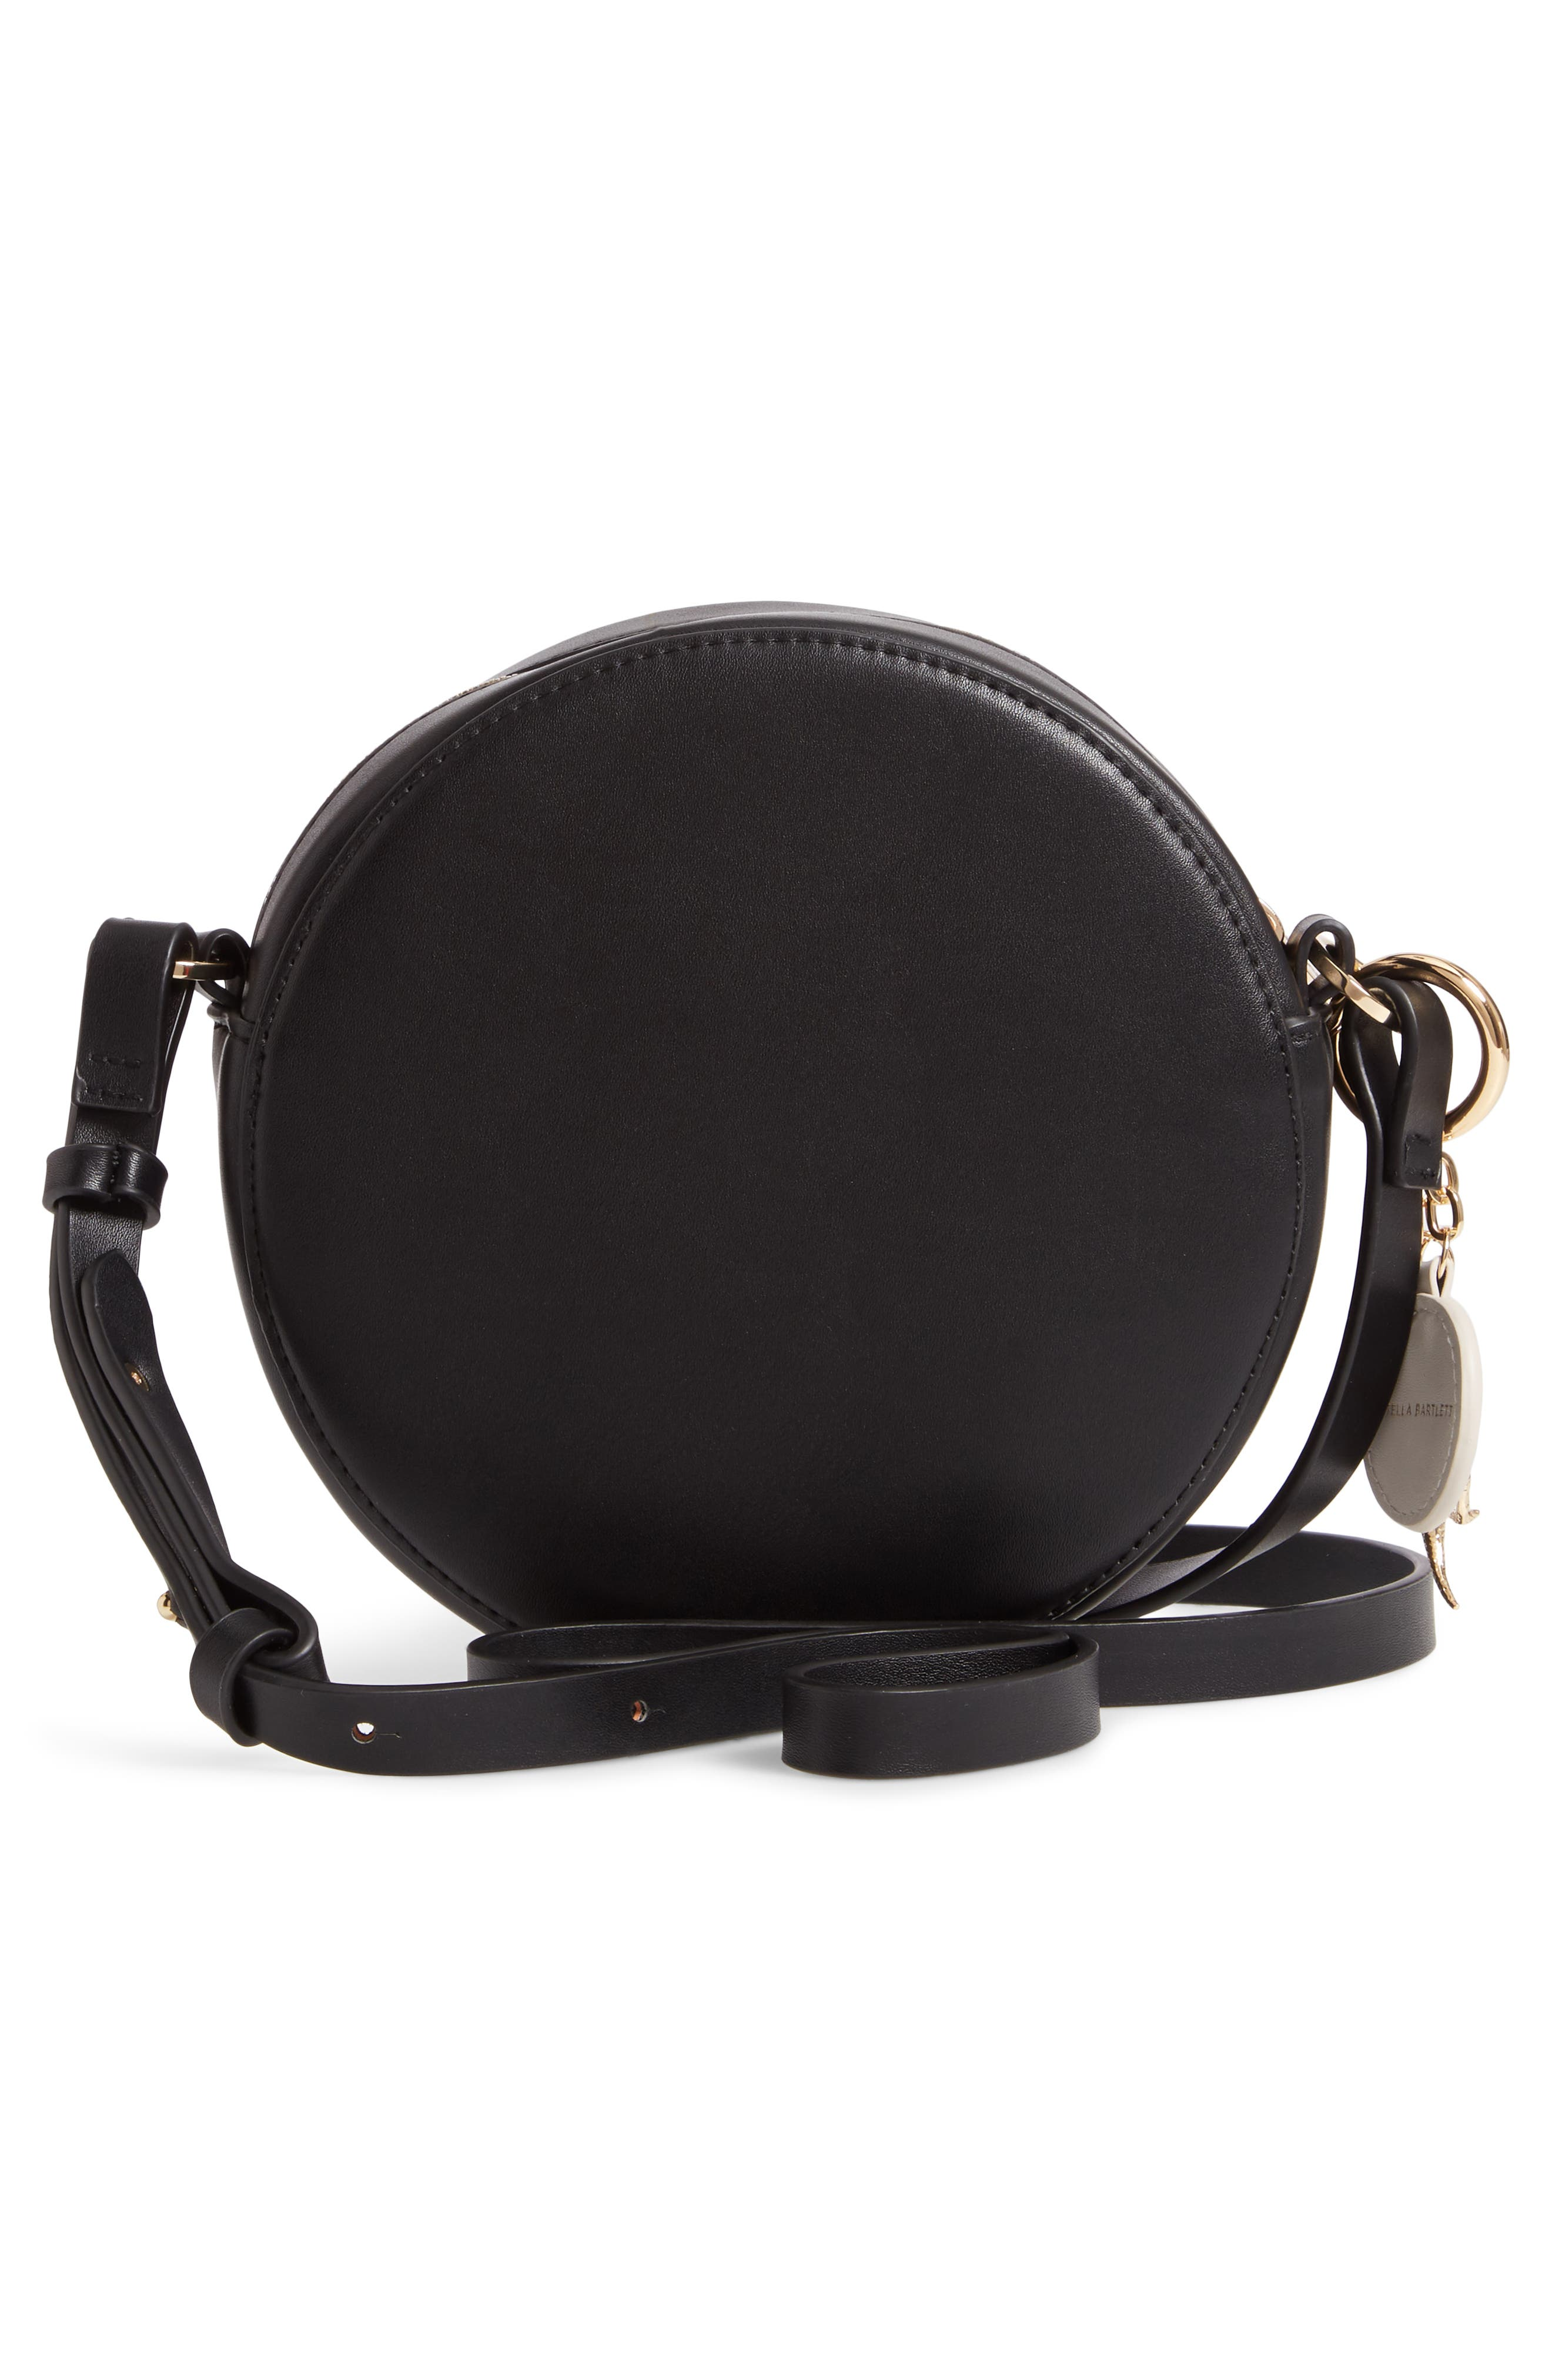 Emerson Faux Leather Round Bag,                             Alternate thumbnail 3, color,                             BLACK/ YELLOW